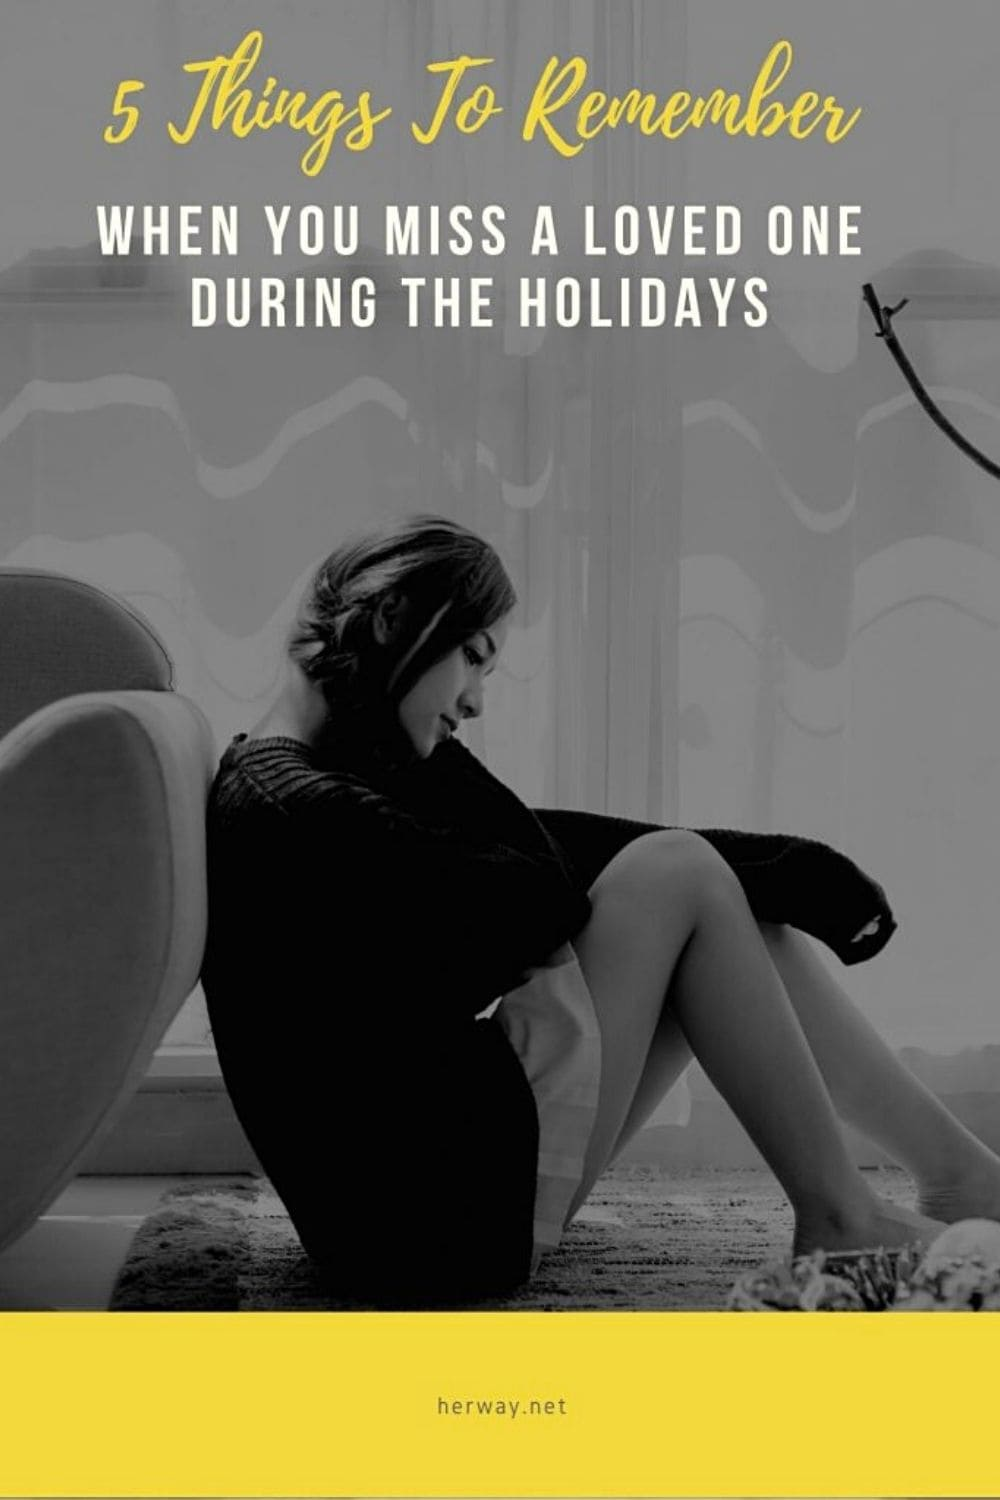 5 Things To Remember When You Miss A Loved One During The Holidays